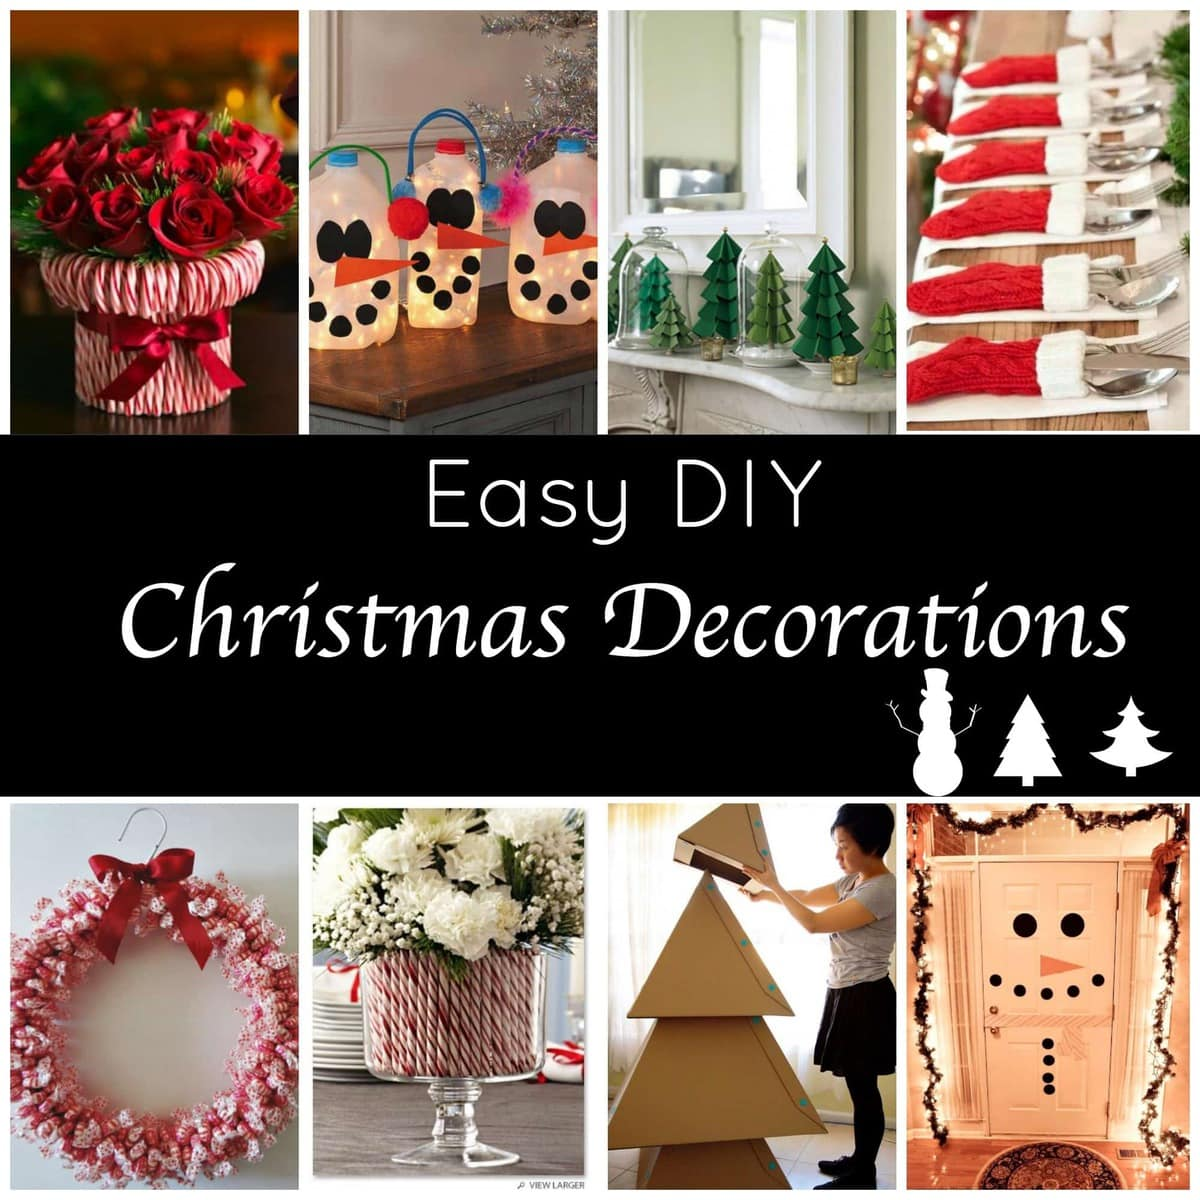 Cute and easy diy holiday decorations for a festive home for Cute easy diy bedroom ideas